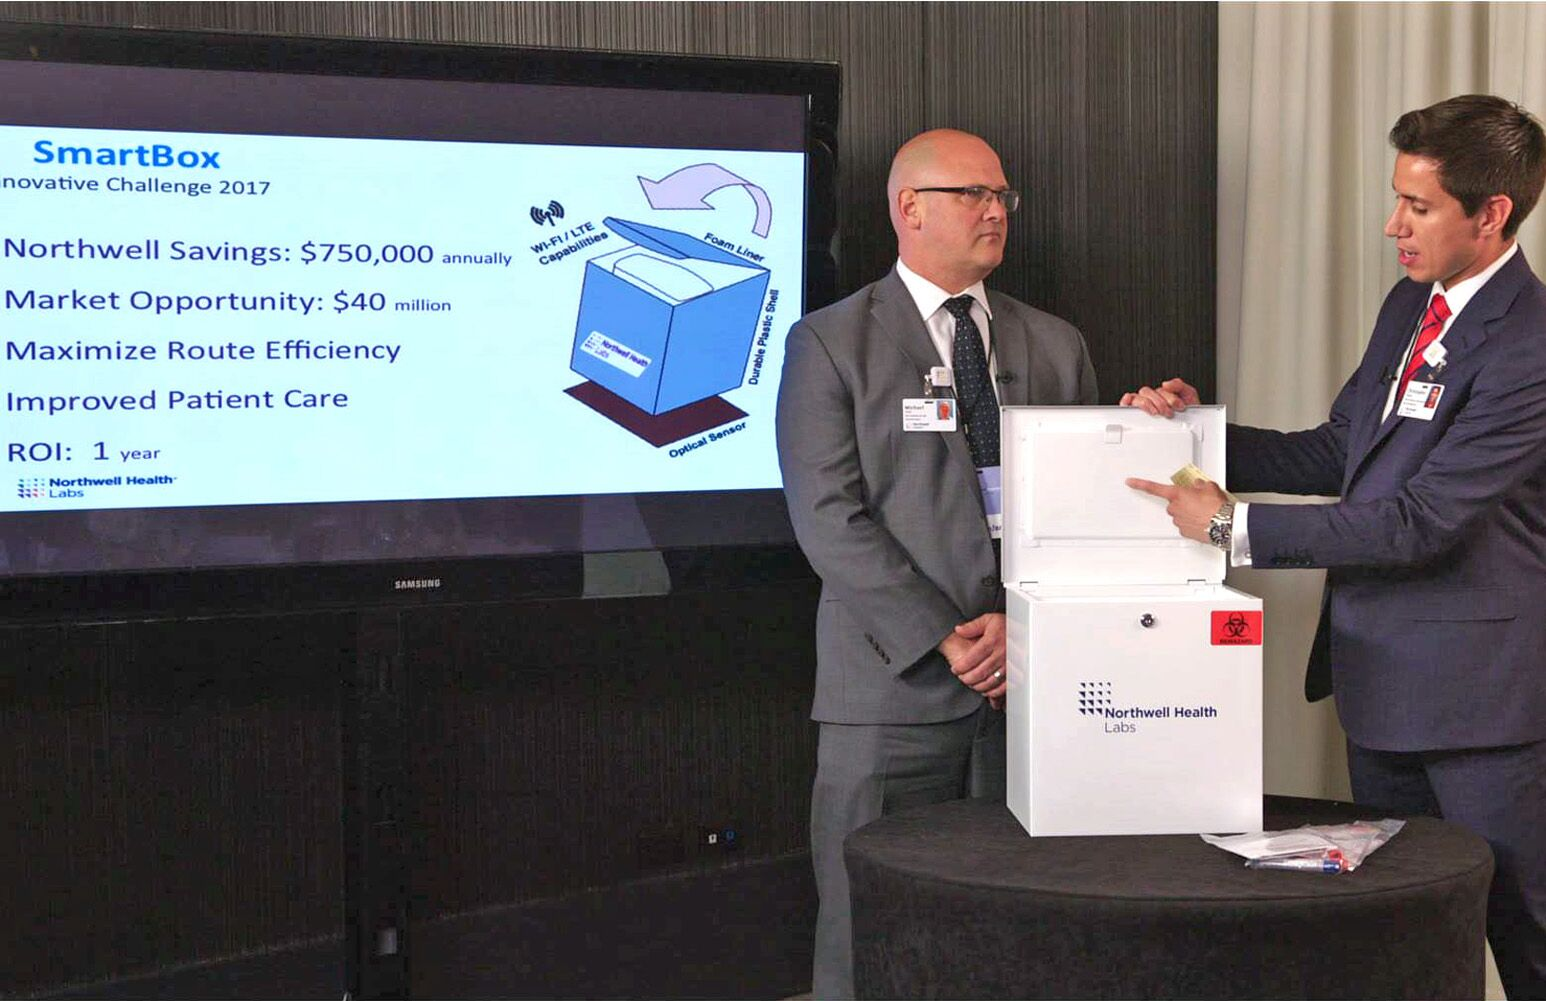 Chris Zavala and Michael Eller present the Smartbox during the Innovation Challenge.